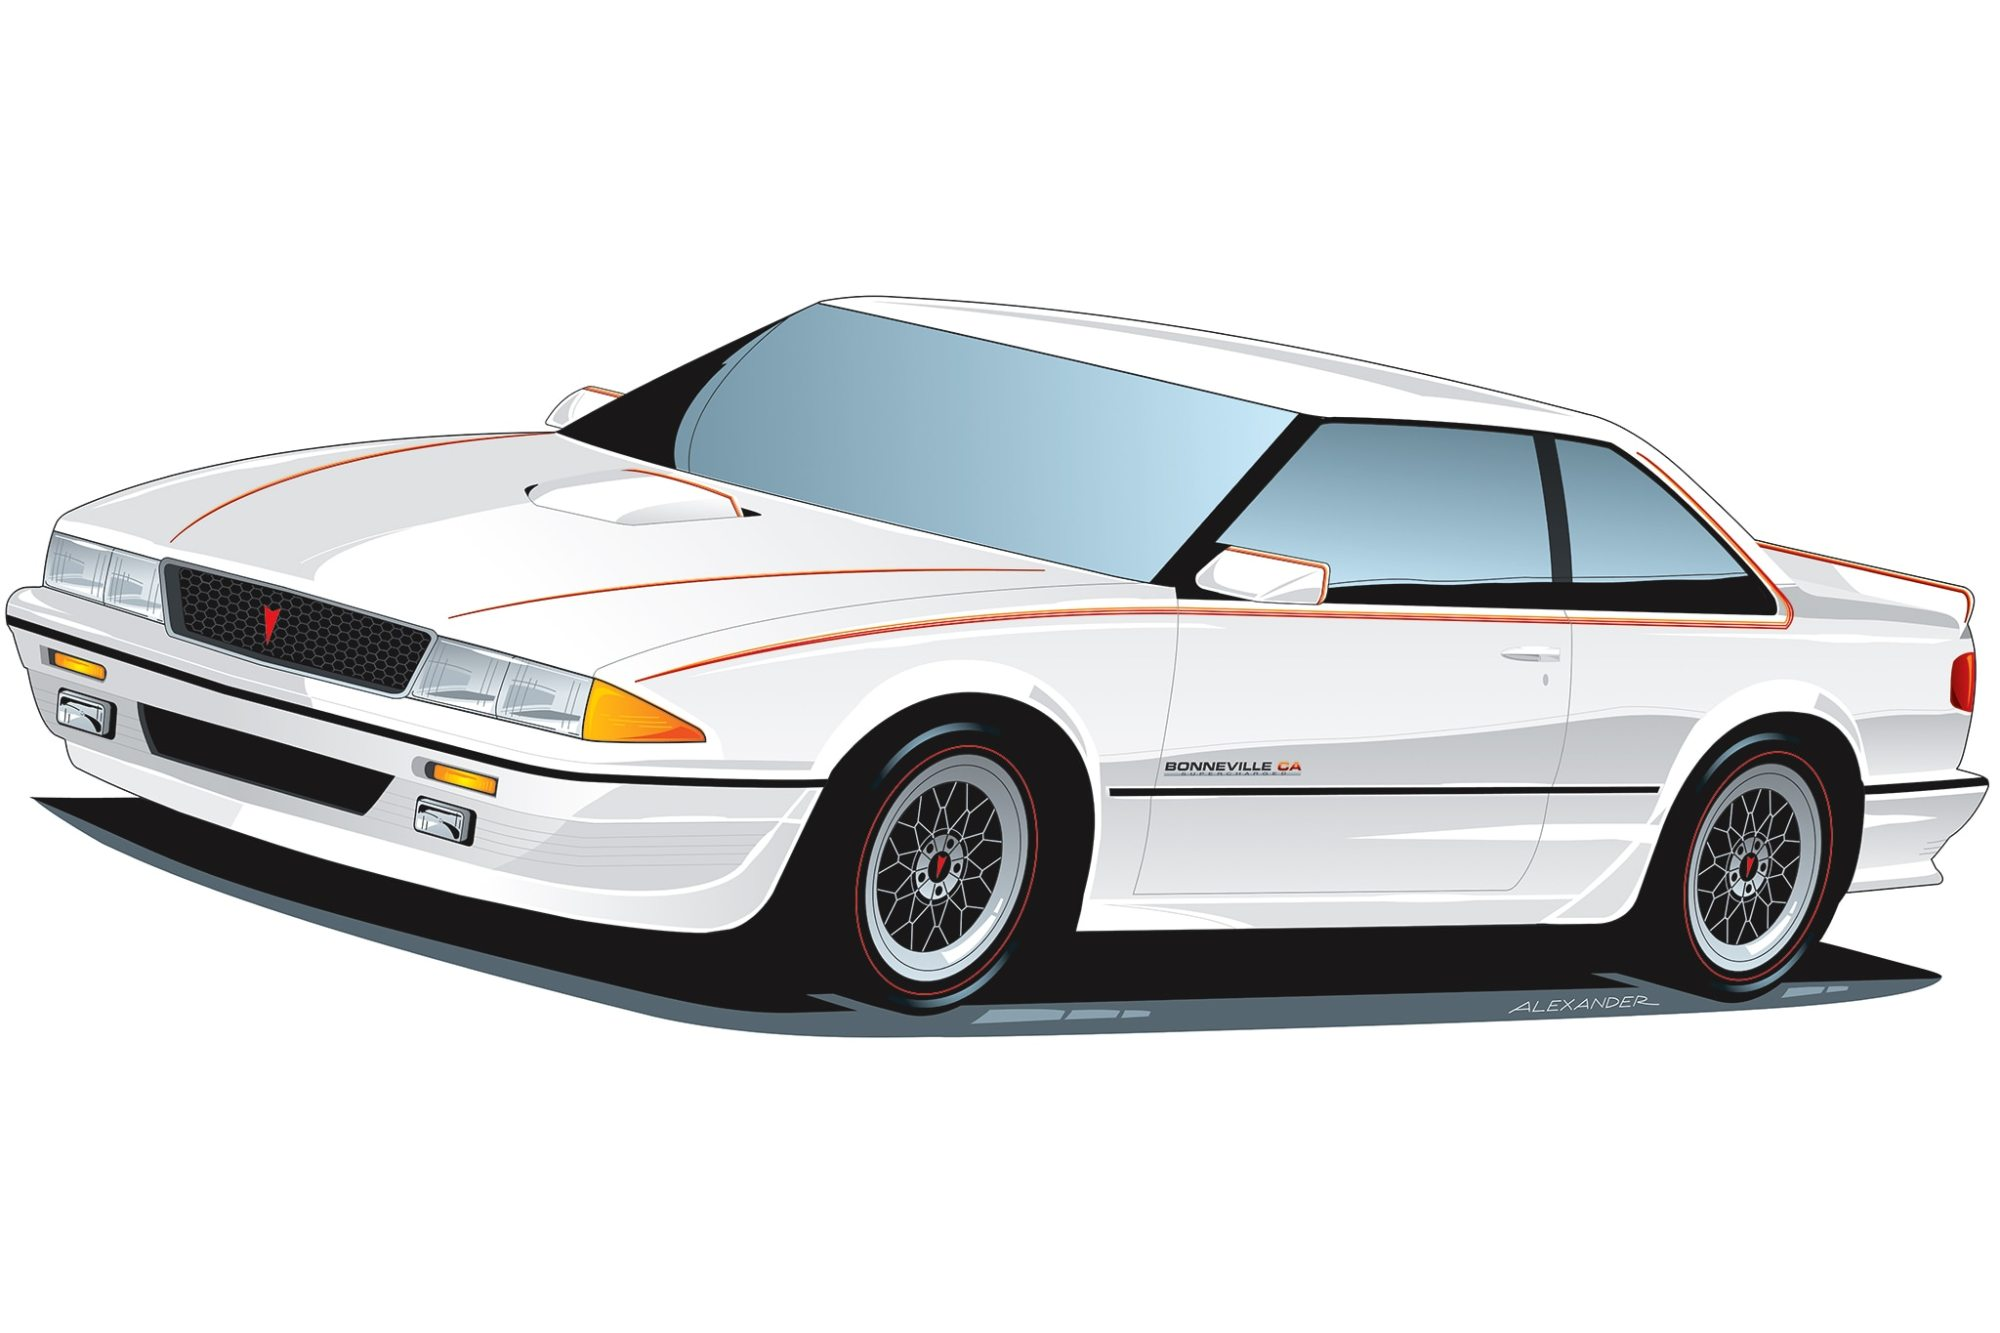 hight resolution of 1989 pontiac bonneville ca what if